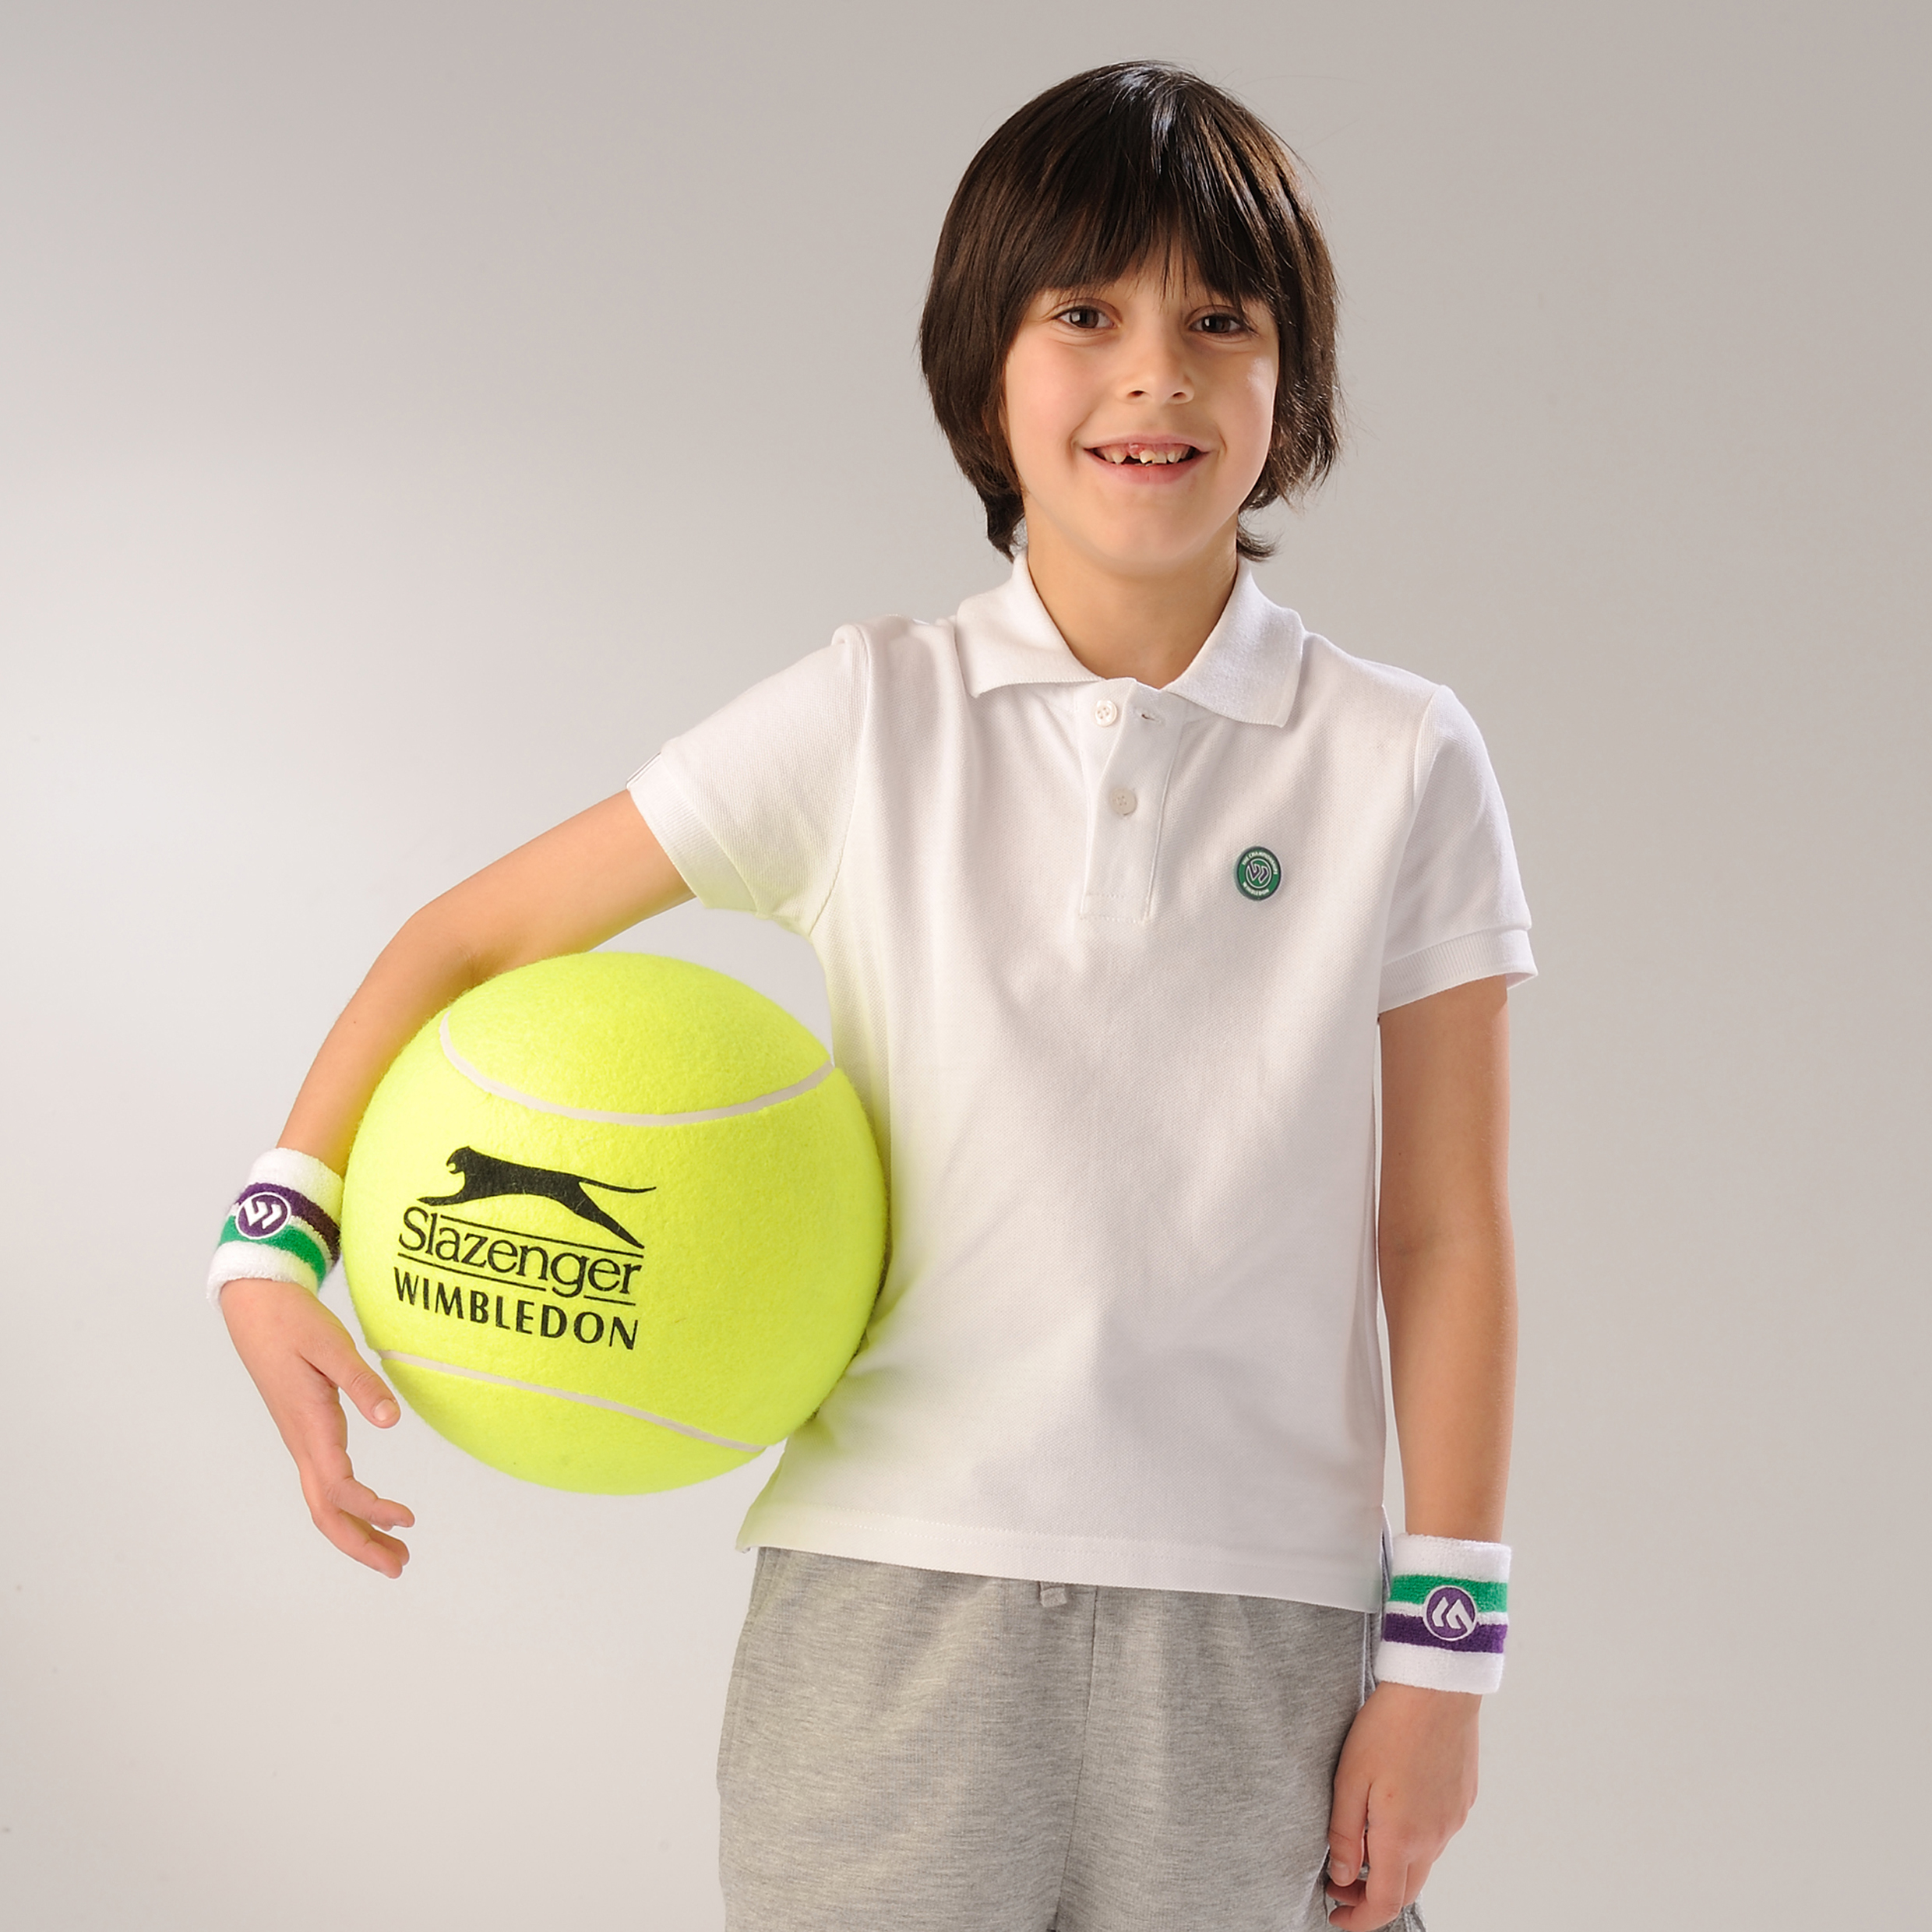 Wimbledon Pique Polo Shirt - White - Kids